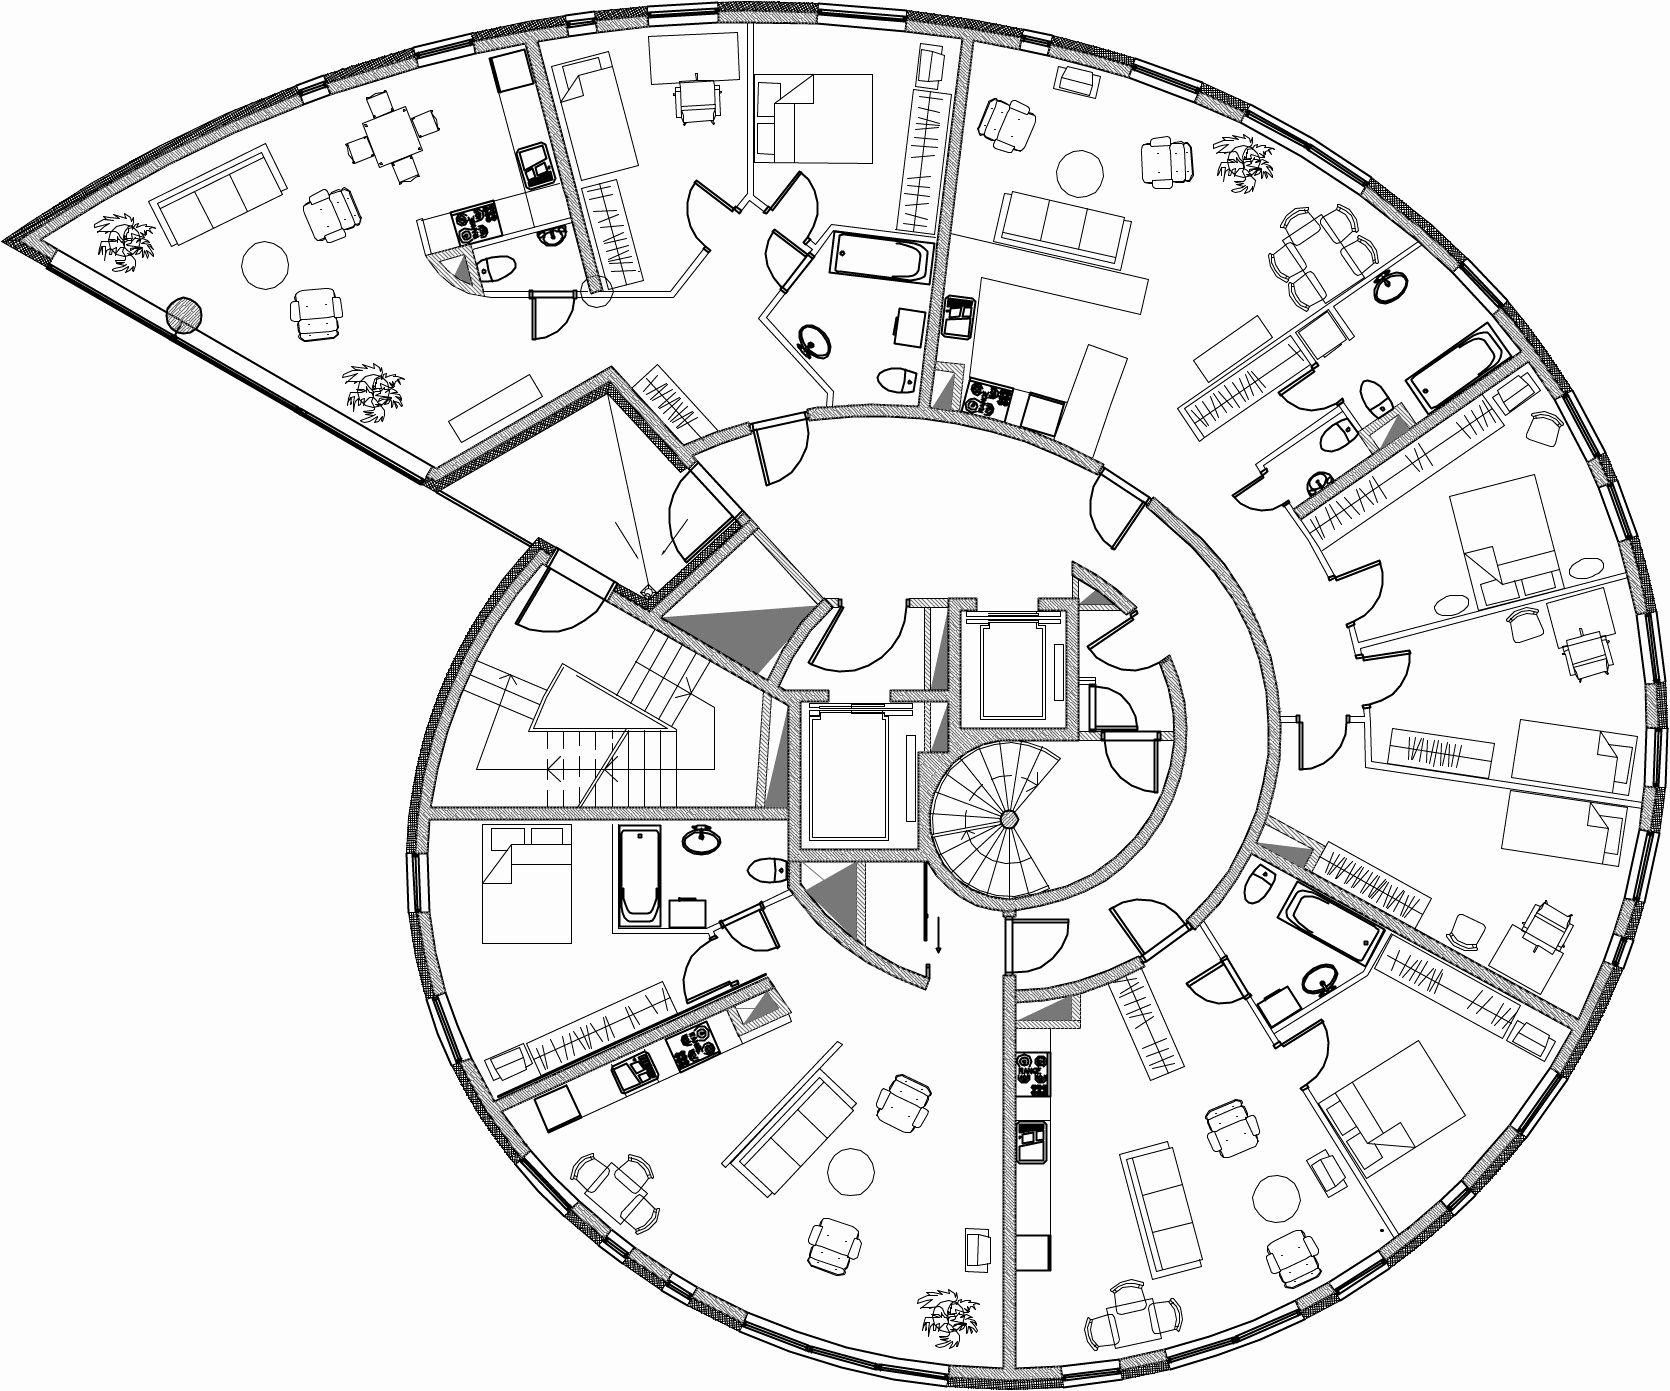 Electrical Symbols Drawing At Free For Personal Of Relay 1670x1391 Floor Plan Luxury Architectural